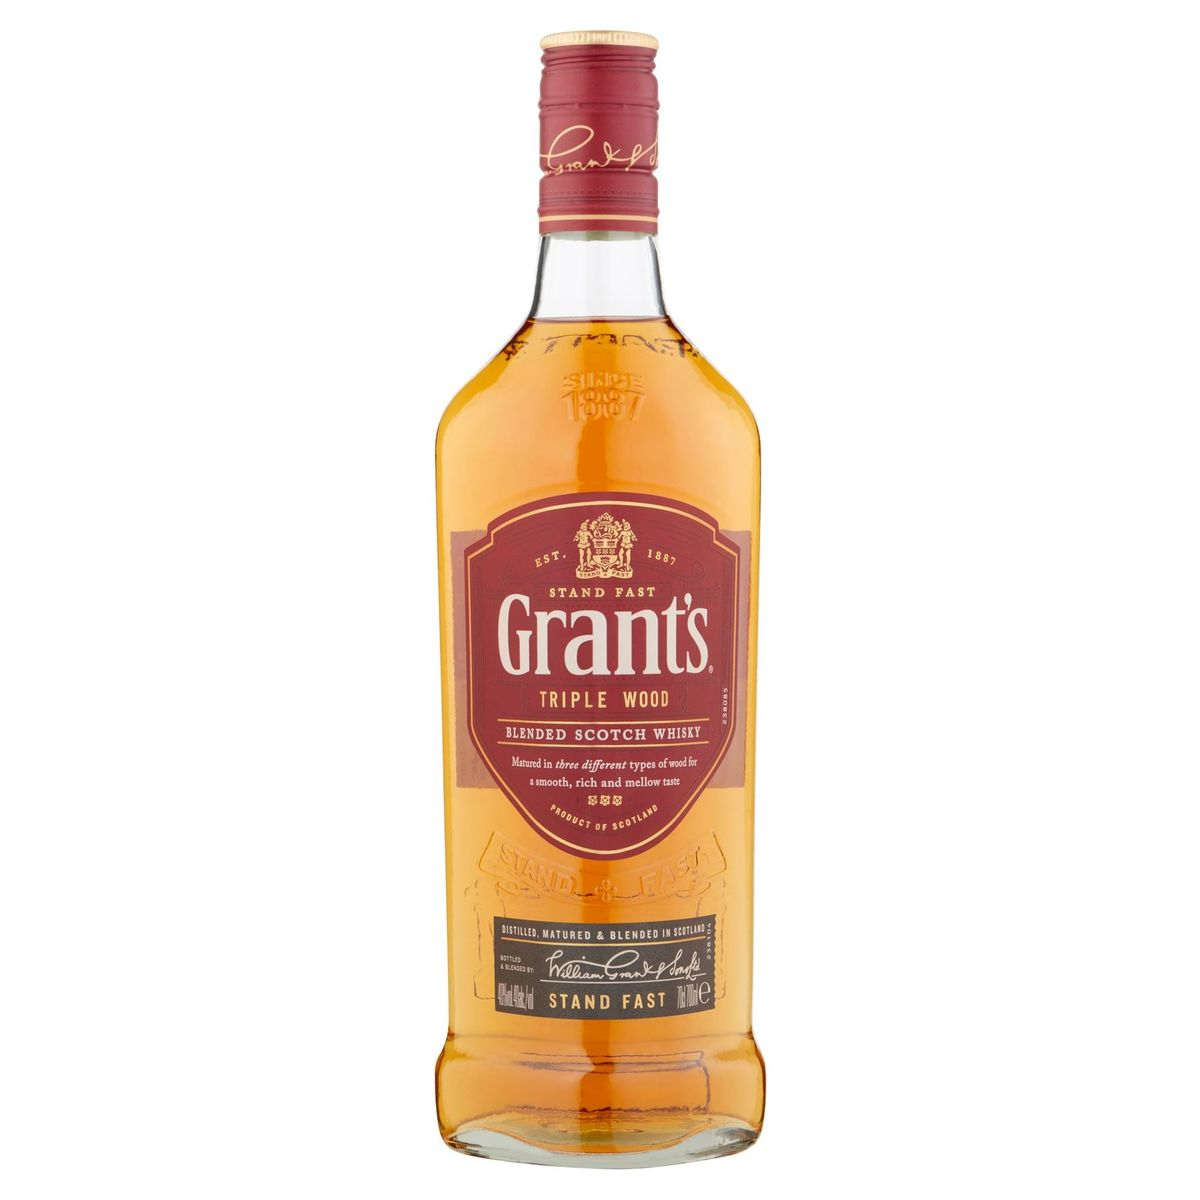 Grant's Triple Wood Blended Scotch Whisky 70 cl